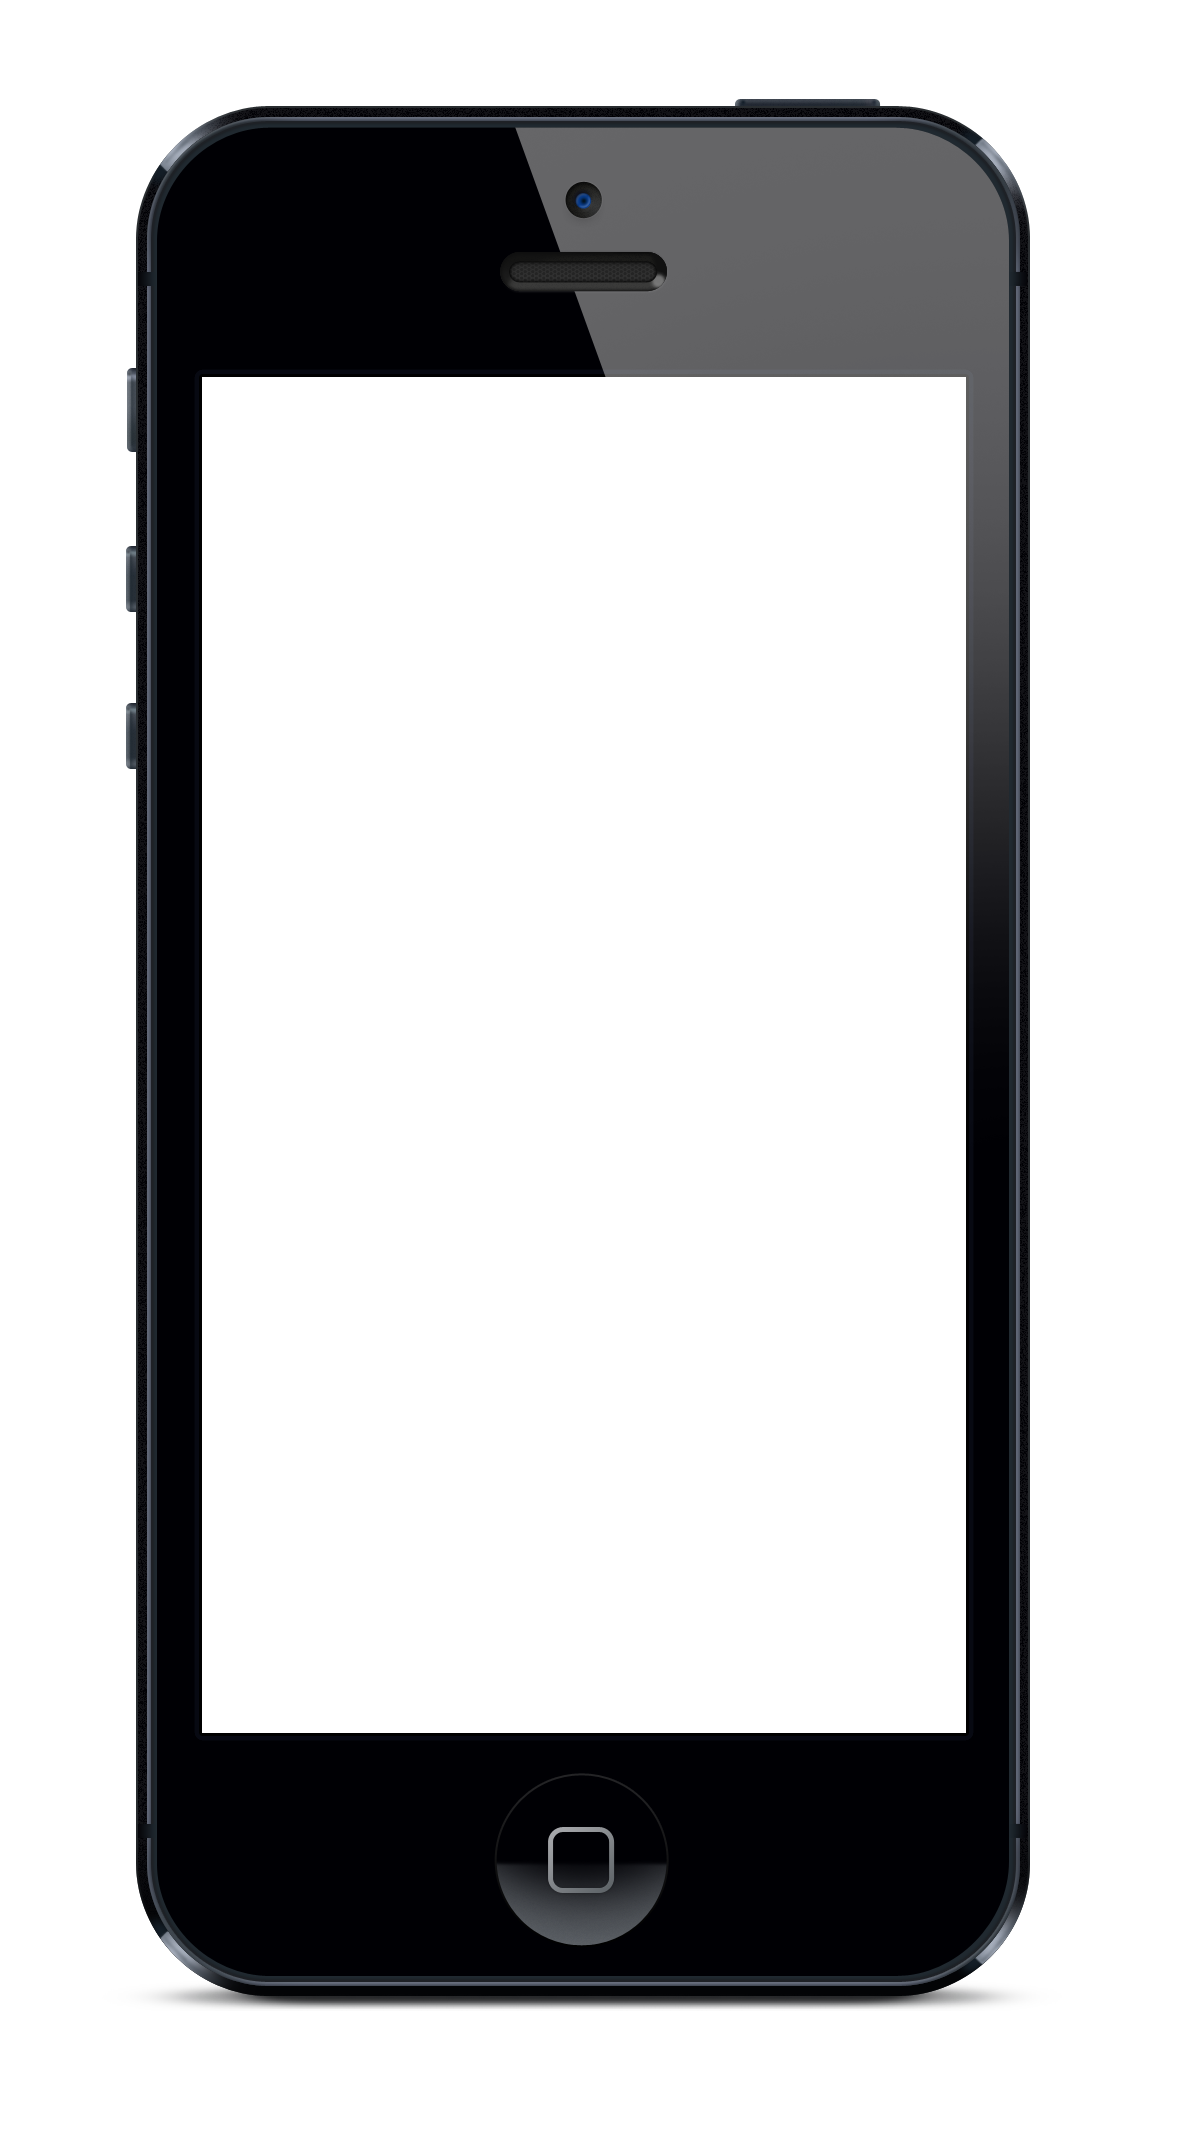 iphone 7 plus mockup PlusPng.